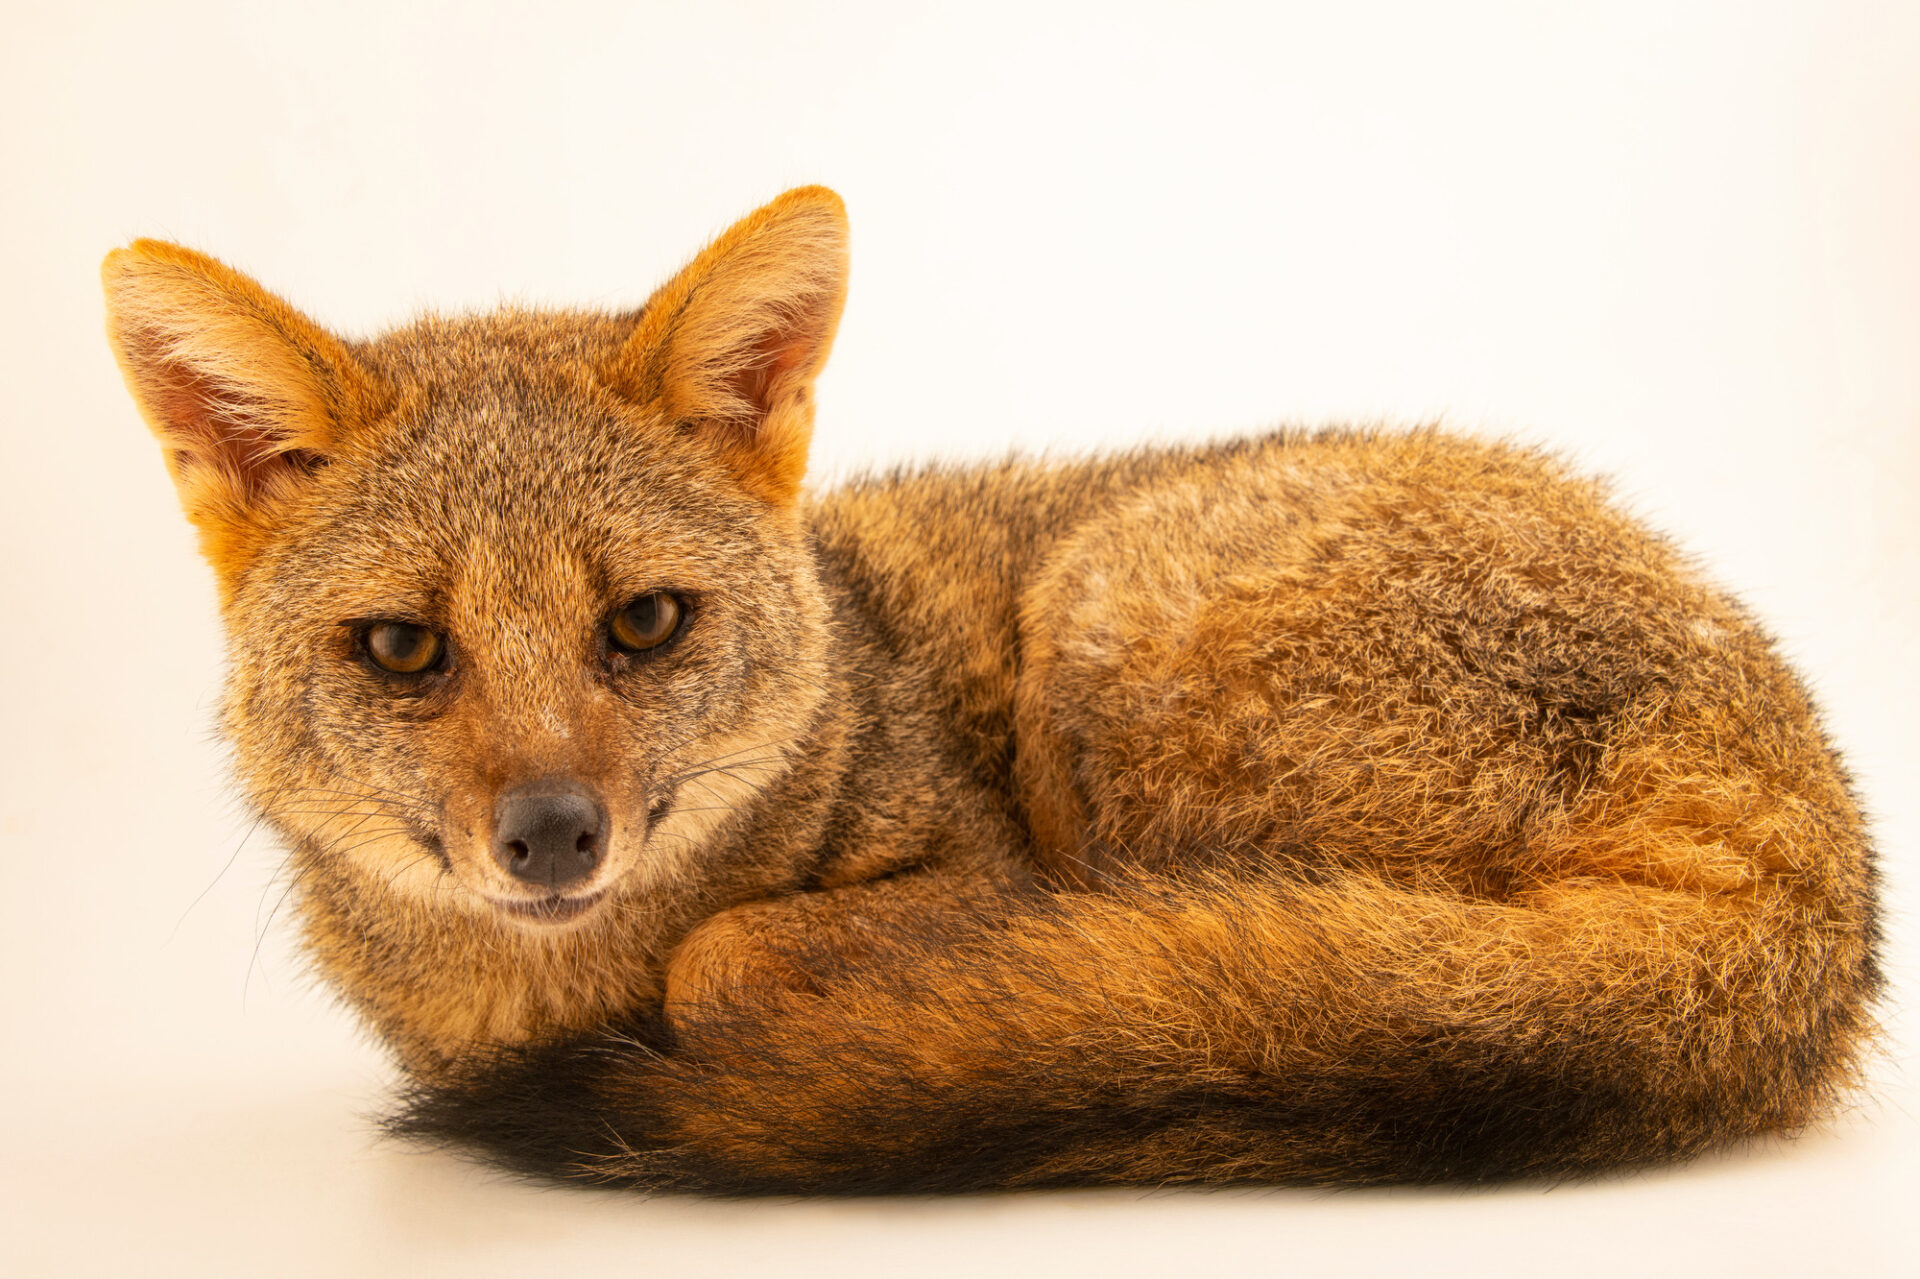 Photo: A female hoary fox (Lycalopex vetulus) at Fundacao Jardim Zoologico de Brasilia.